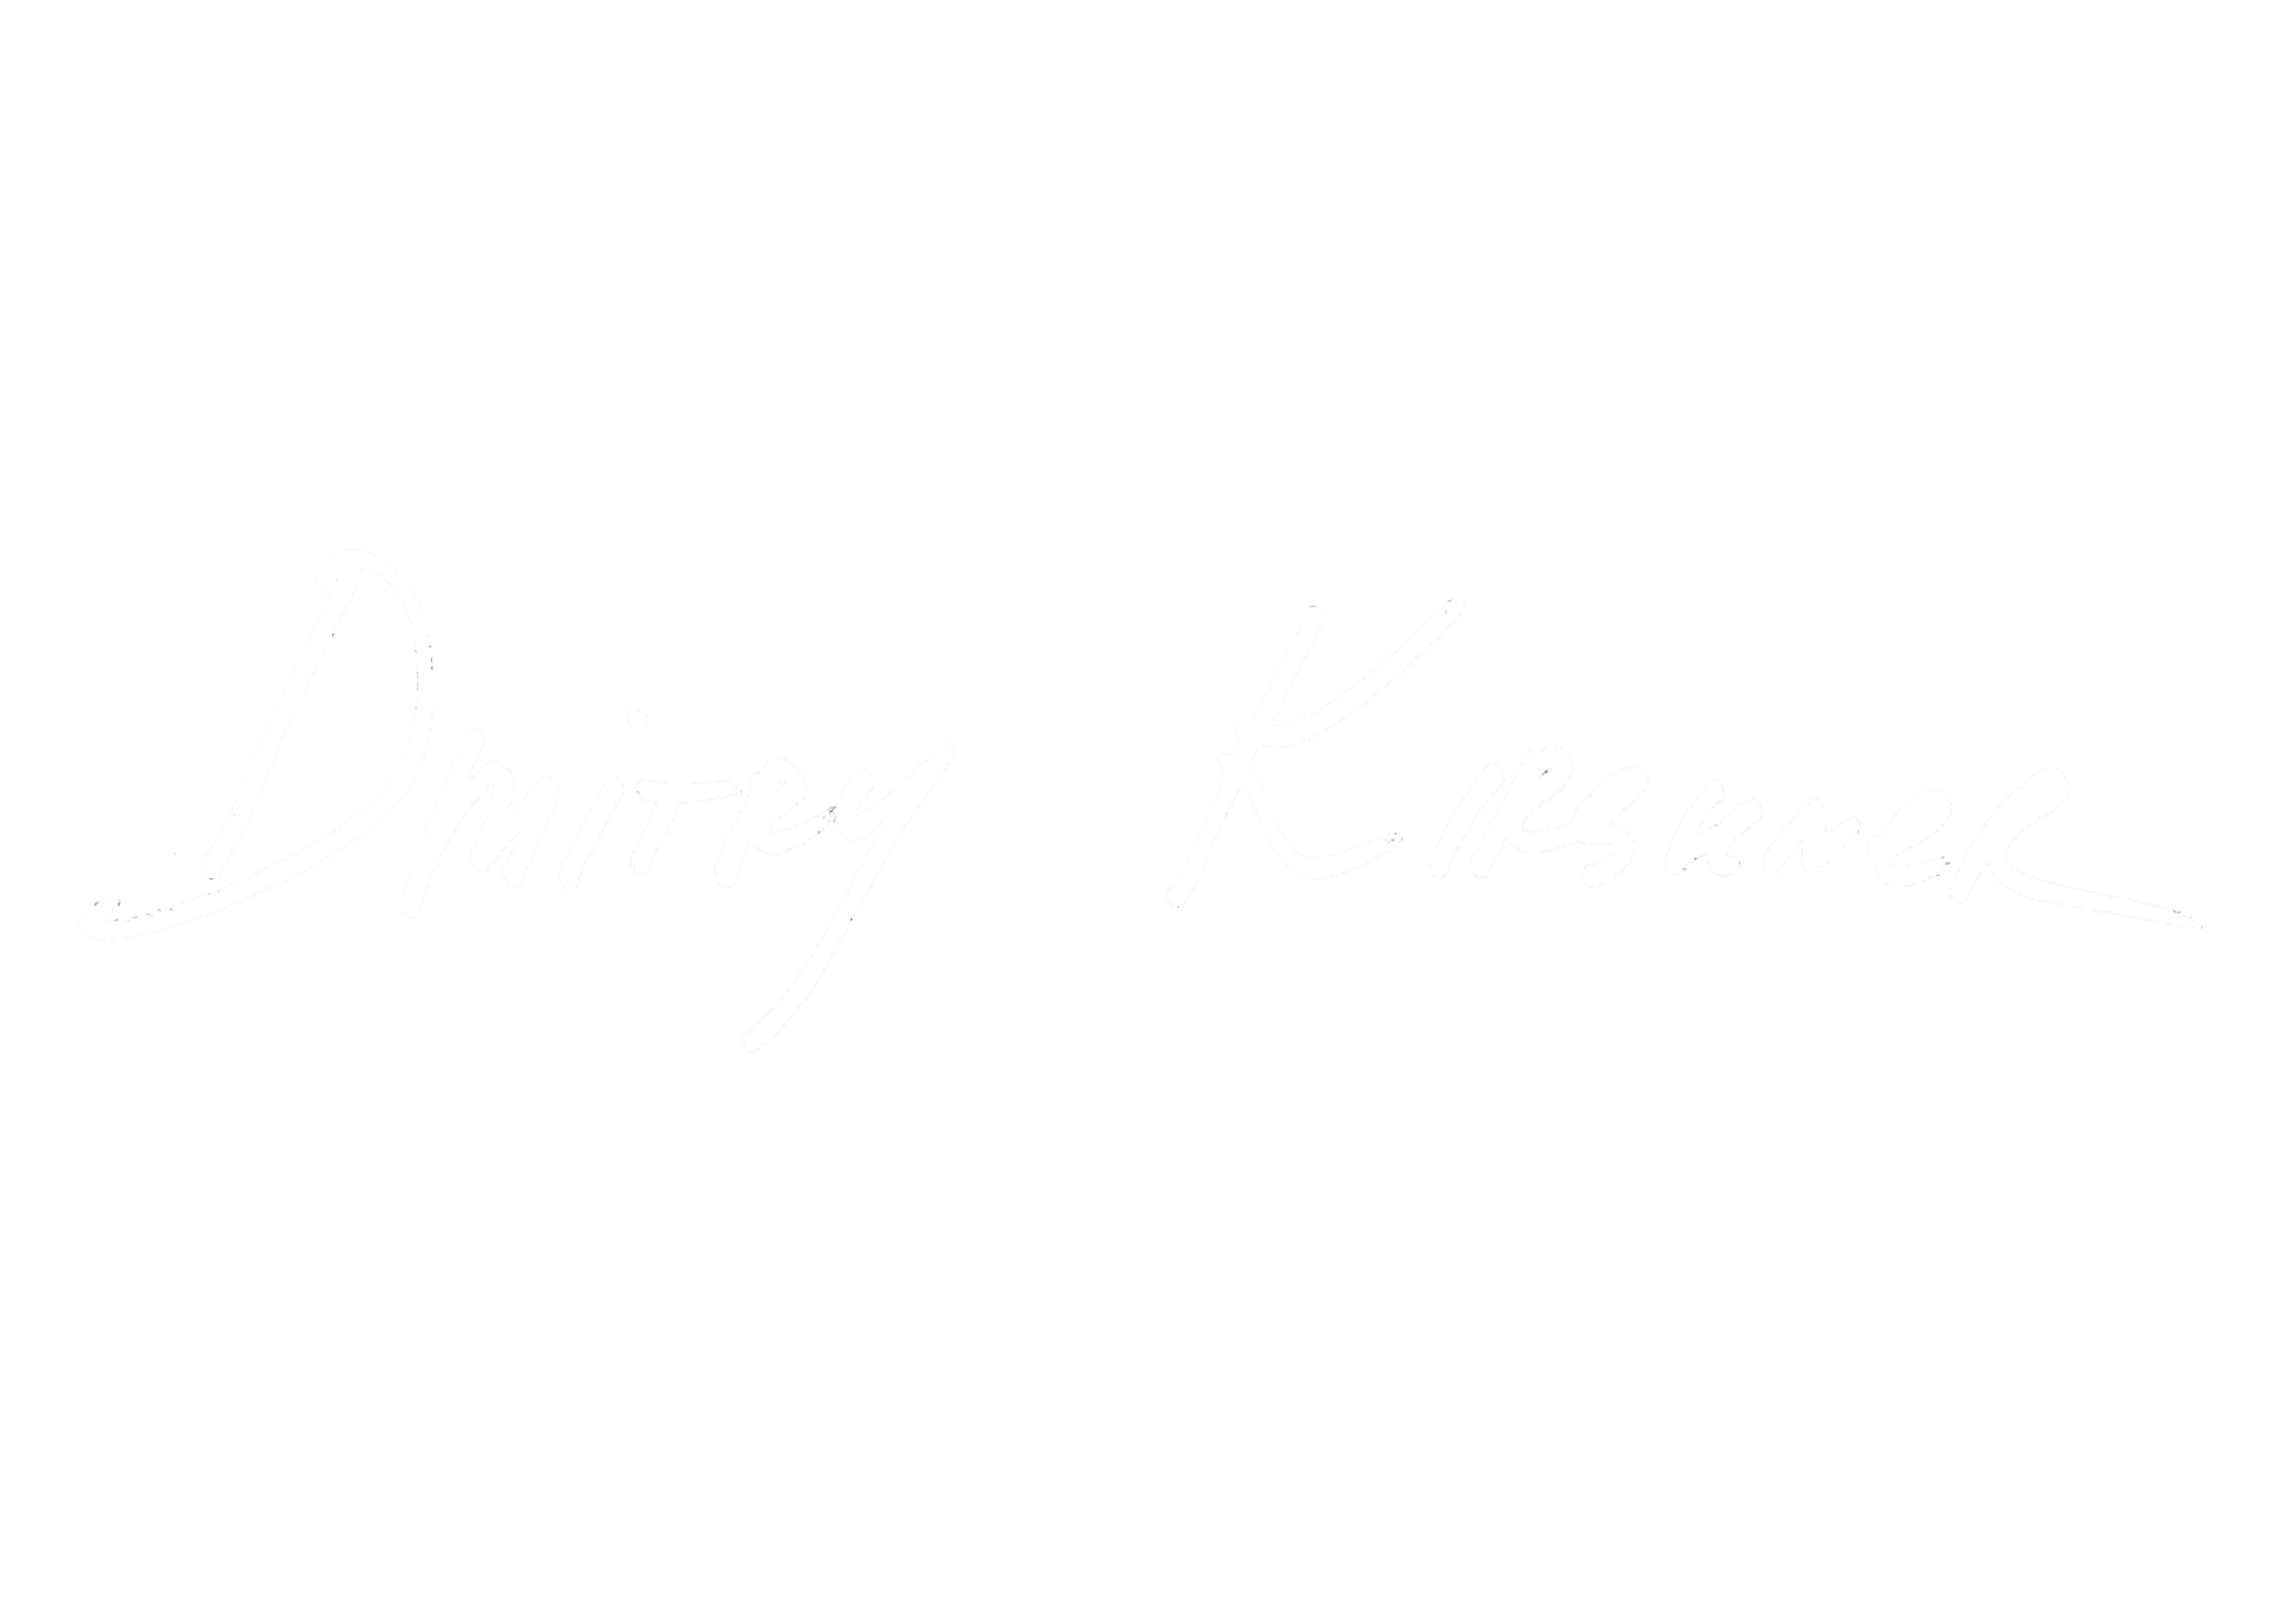 Dmitry Kirshner Fine Art Photography